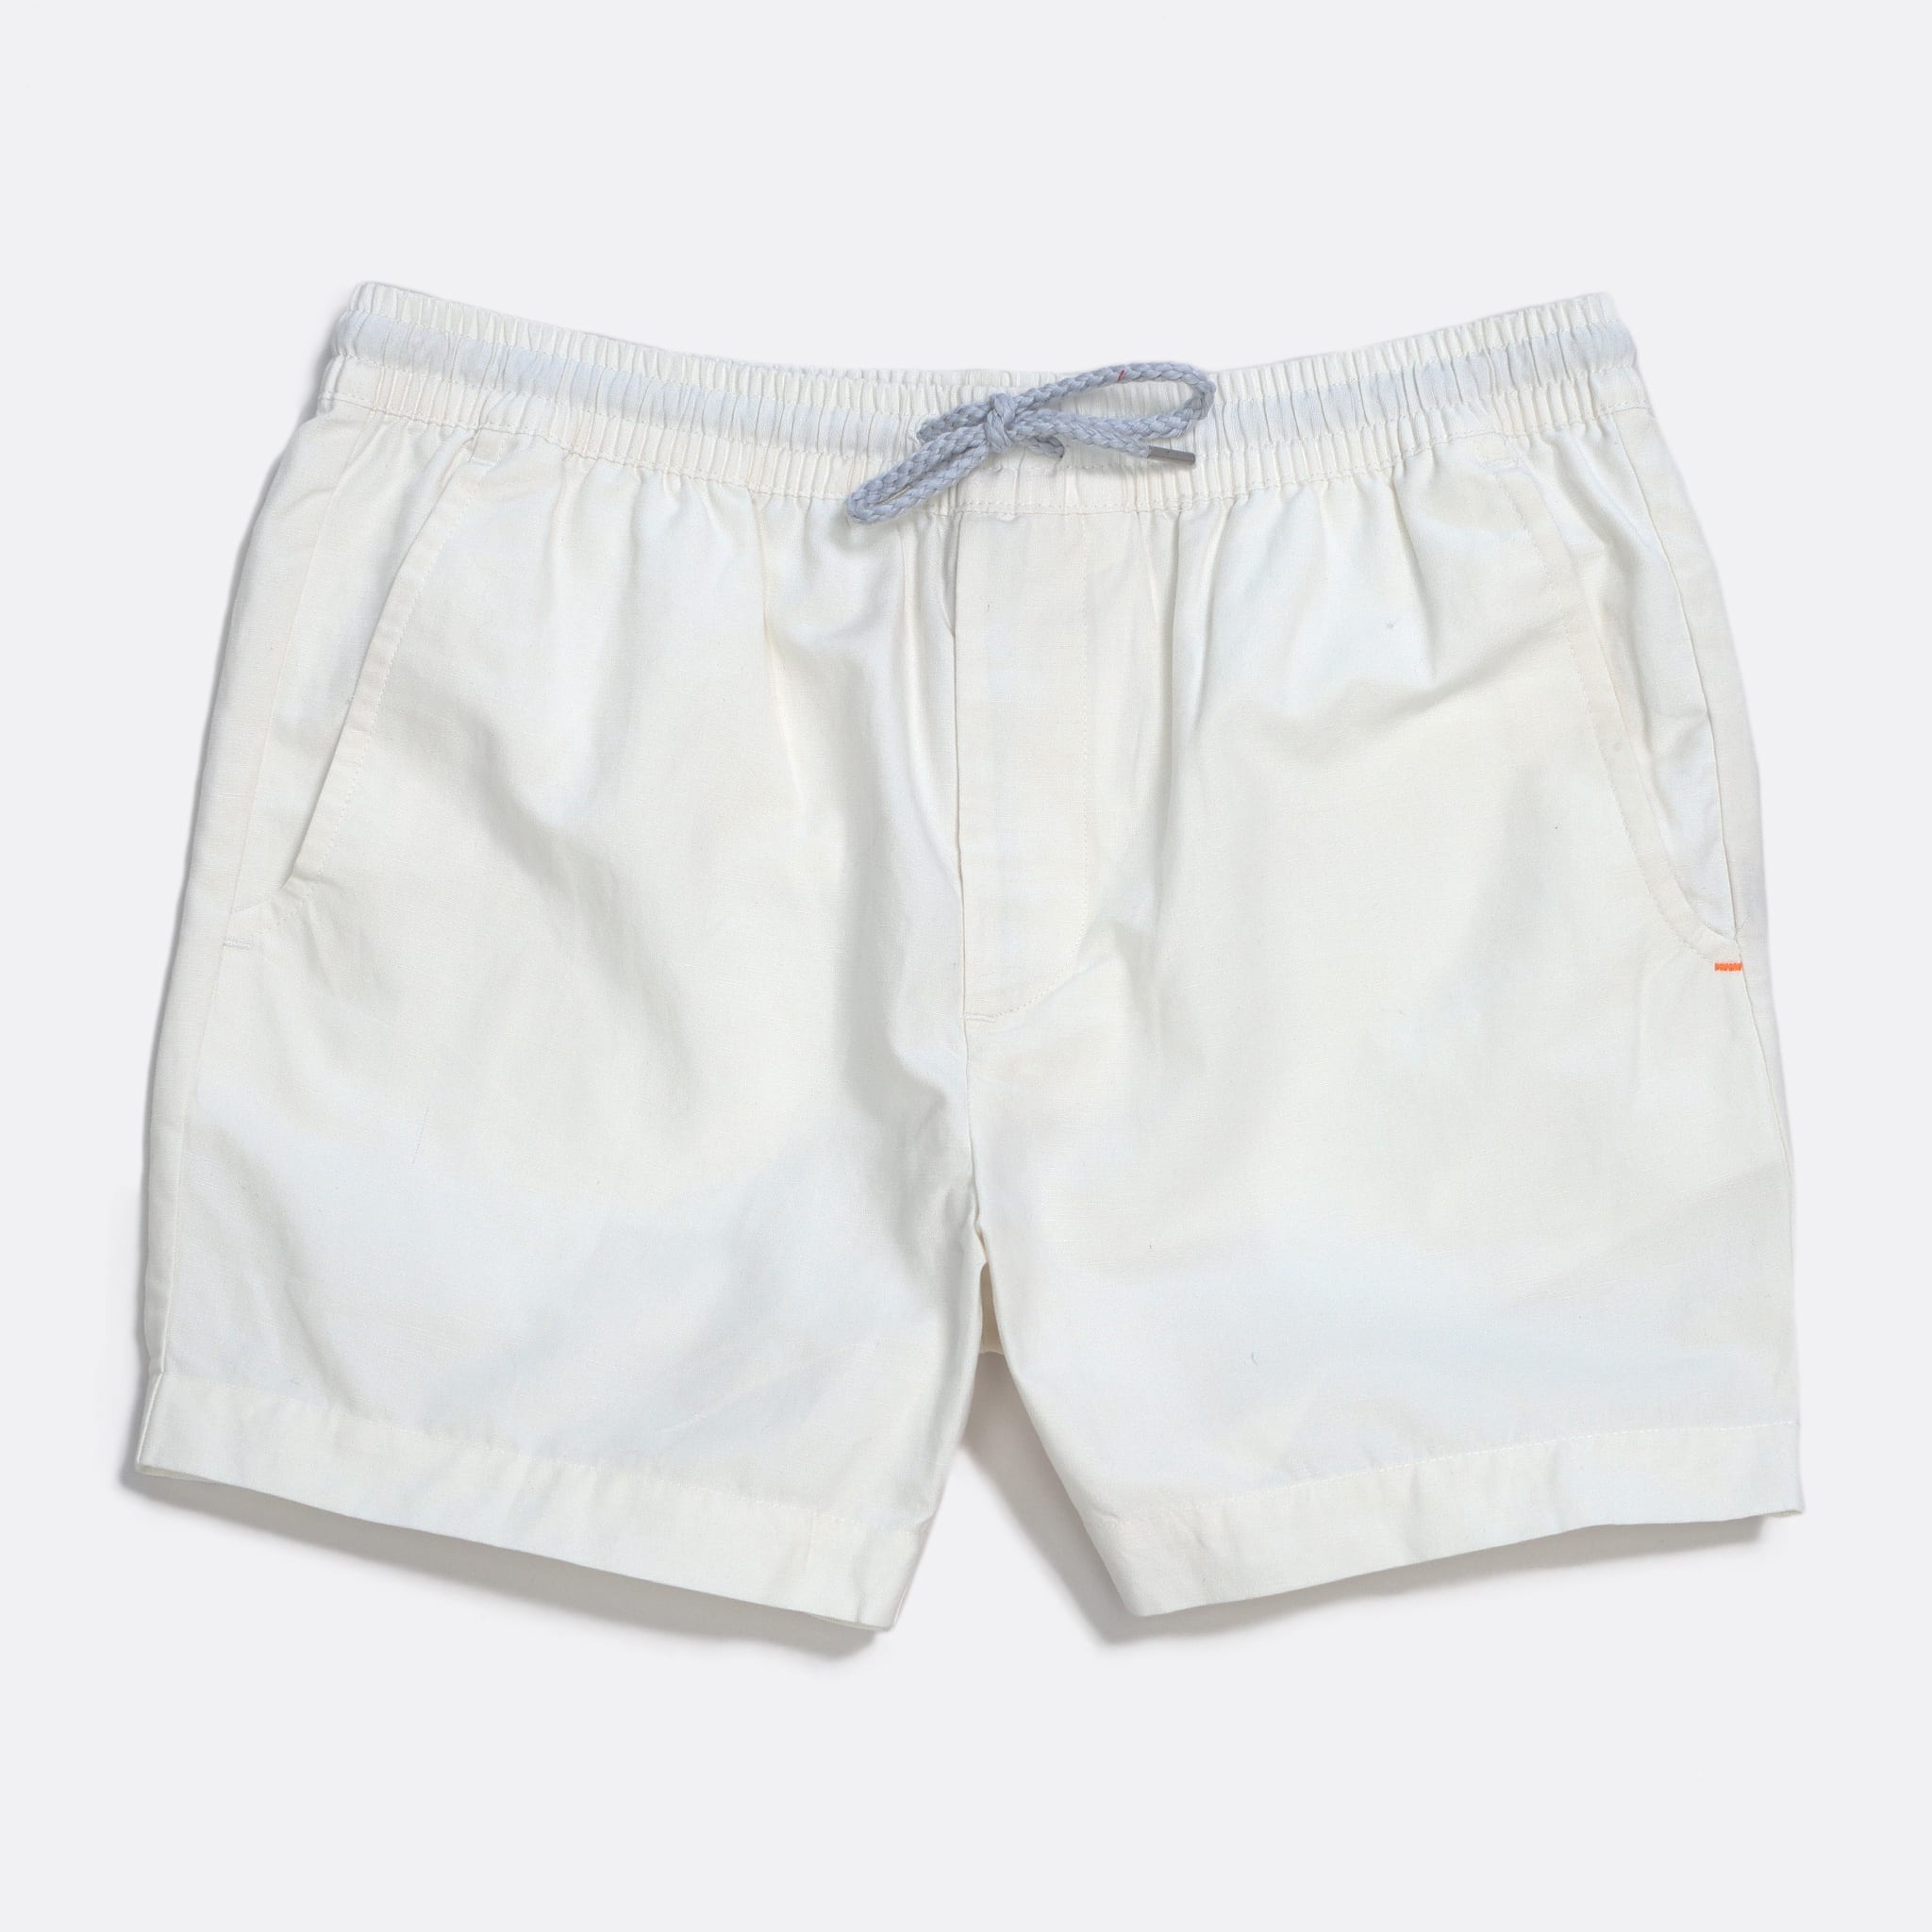 Far Afield House Shorts a White Sand Linen Fabric Casual Basics